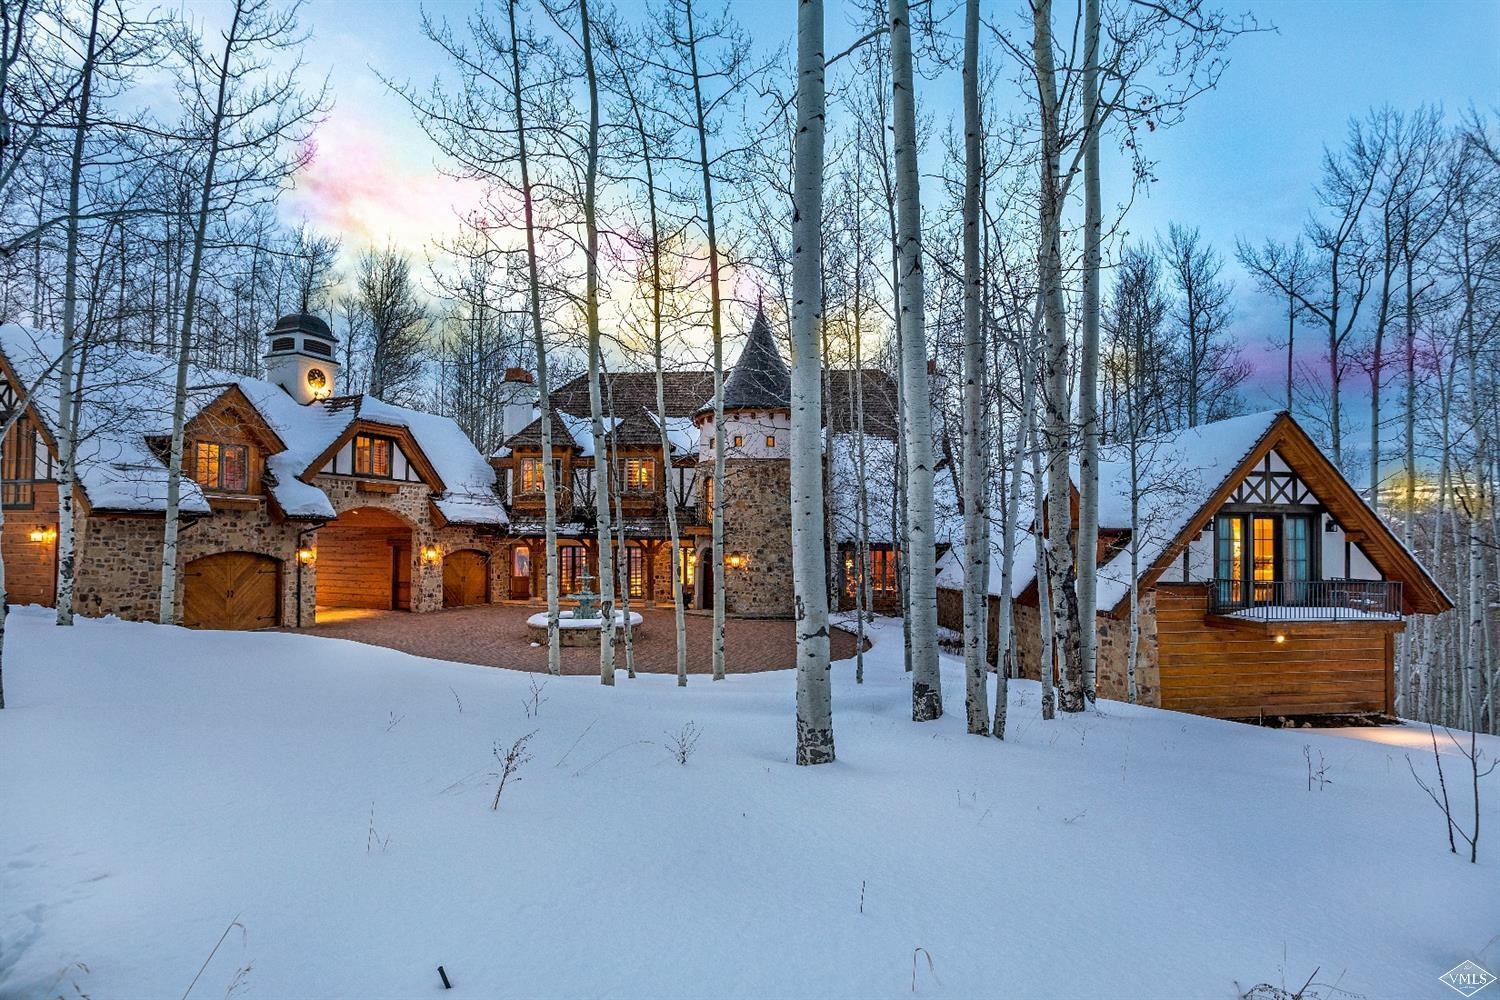 Located within the gates of prestigious Pilgrim Downs lies an enchanting 10,000 SF English estate. Soak in the sights of colorful gardens, Monet bridge atop a cascading creek, and sprawling Aspen trees all set upon 10 acres and only minutes to the ski slopes, golf courses and amenities of a world-class ski resort. Constructed by Beck Builders and fashioned after a castle in Normandy, this treasure is not to be missed! http://mls.pilgrimdownsestate.com/